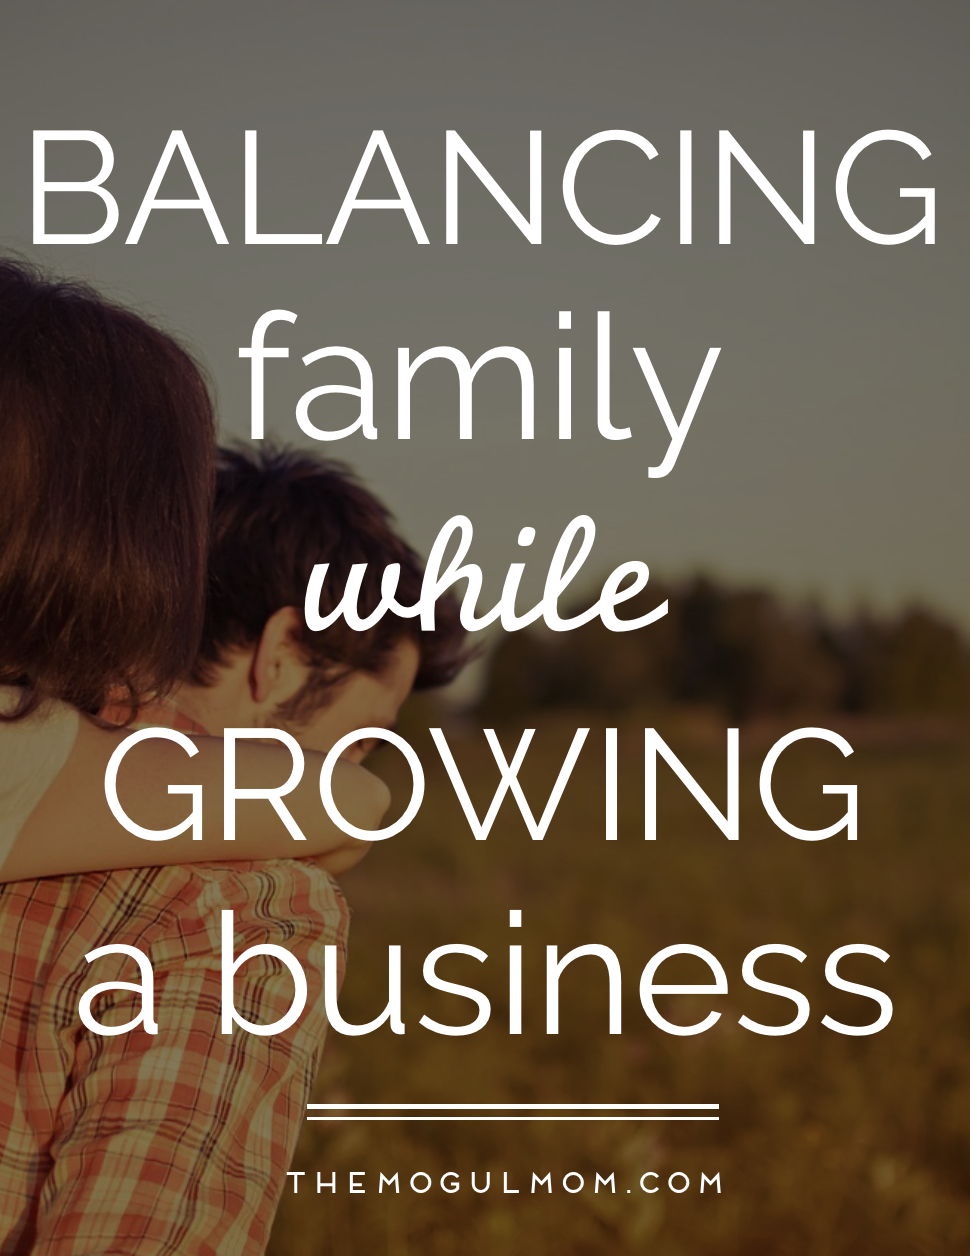 Balancing Family While Growing A Business